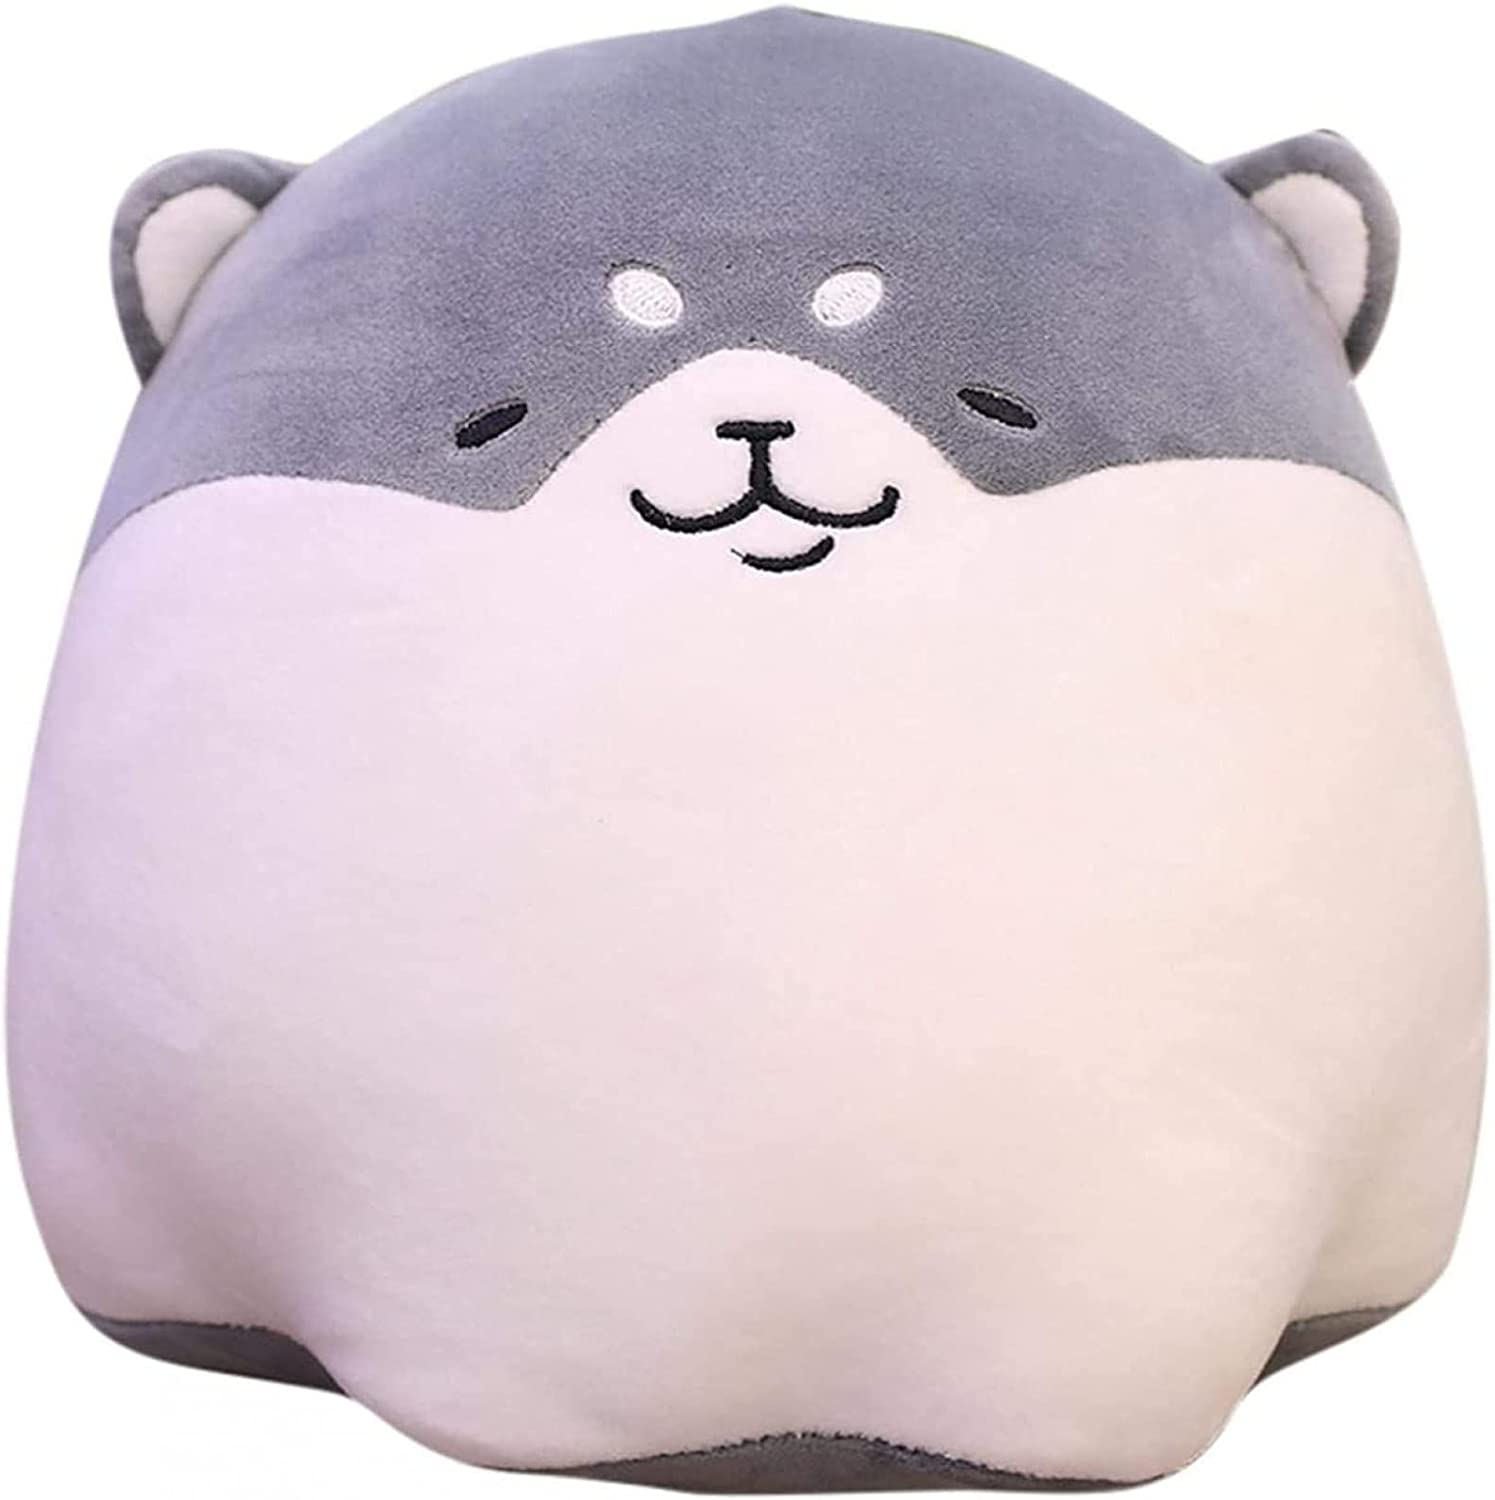 Plush NEW before selling ☆ Toys Cute Shiba Inu Dolls for Cus Suitable All items in the store Pillows Back